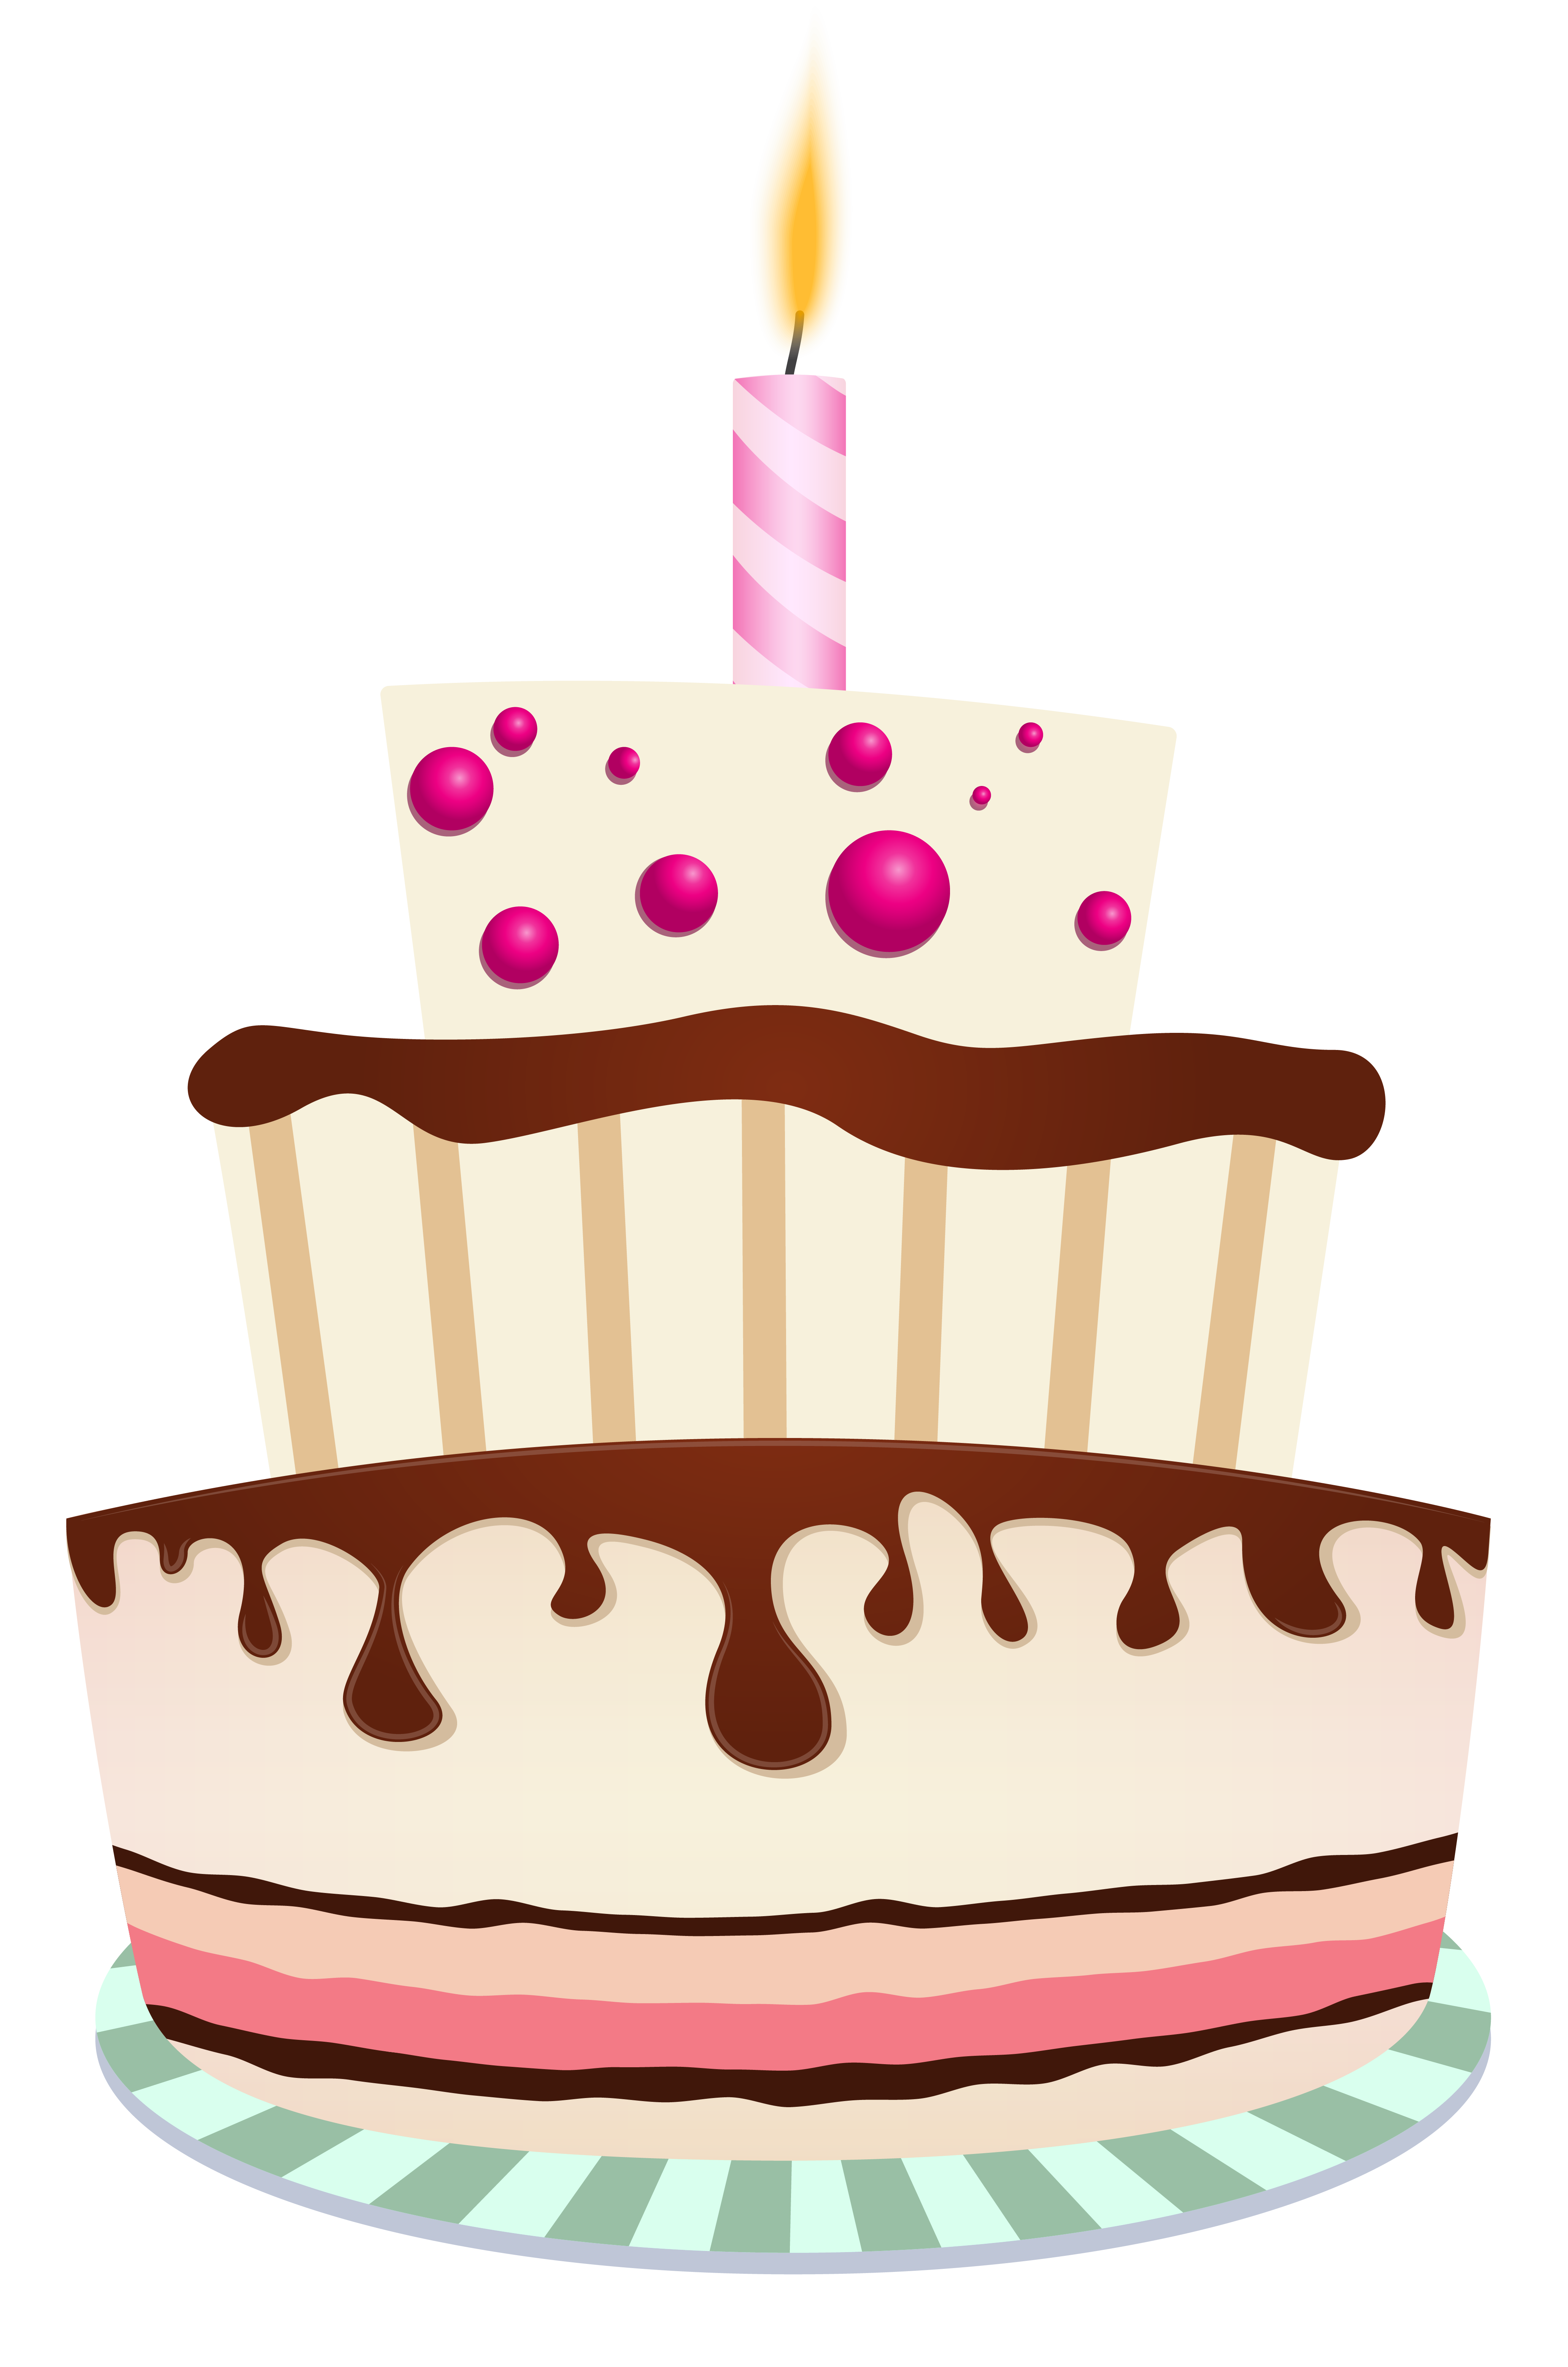 Transparent candles birthday cake. With one candle png